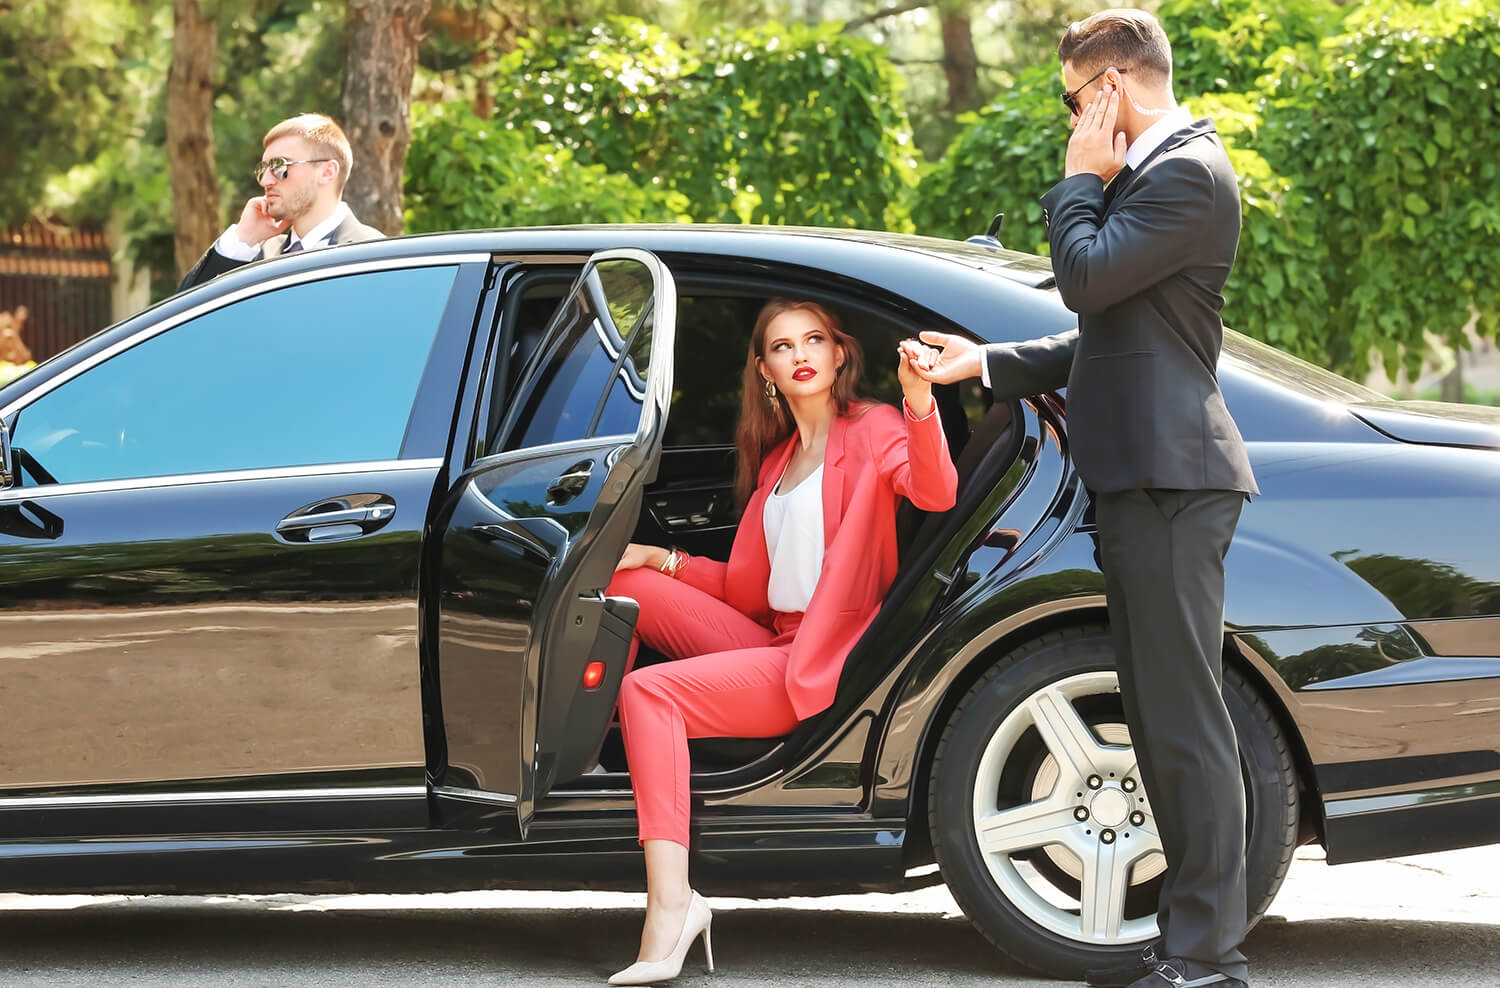 Chauffeur Limousine and Bodyguard Service